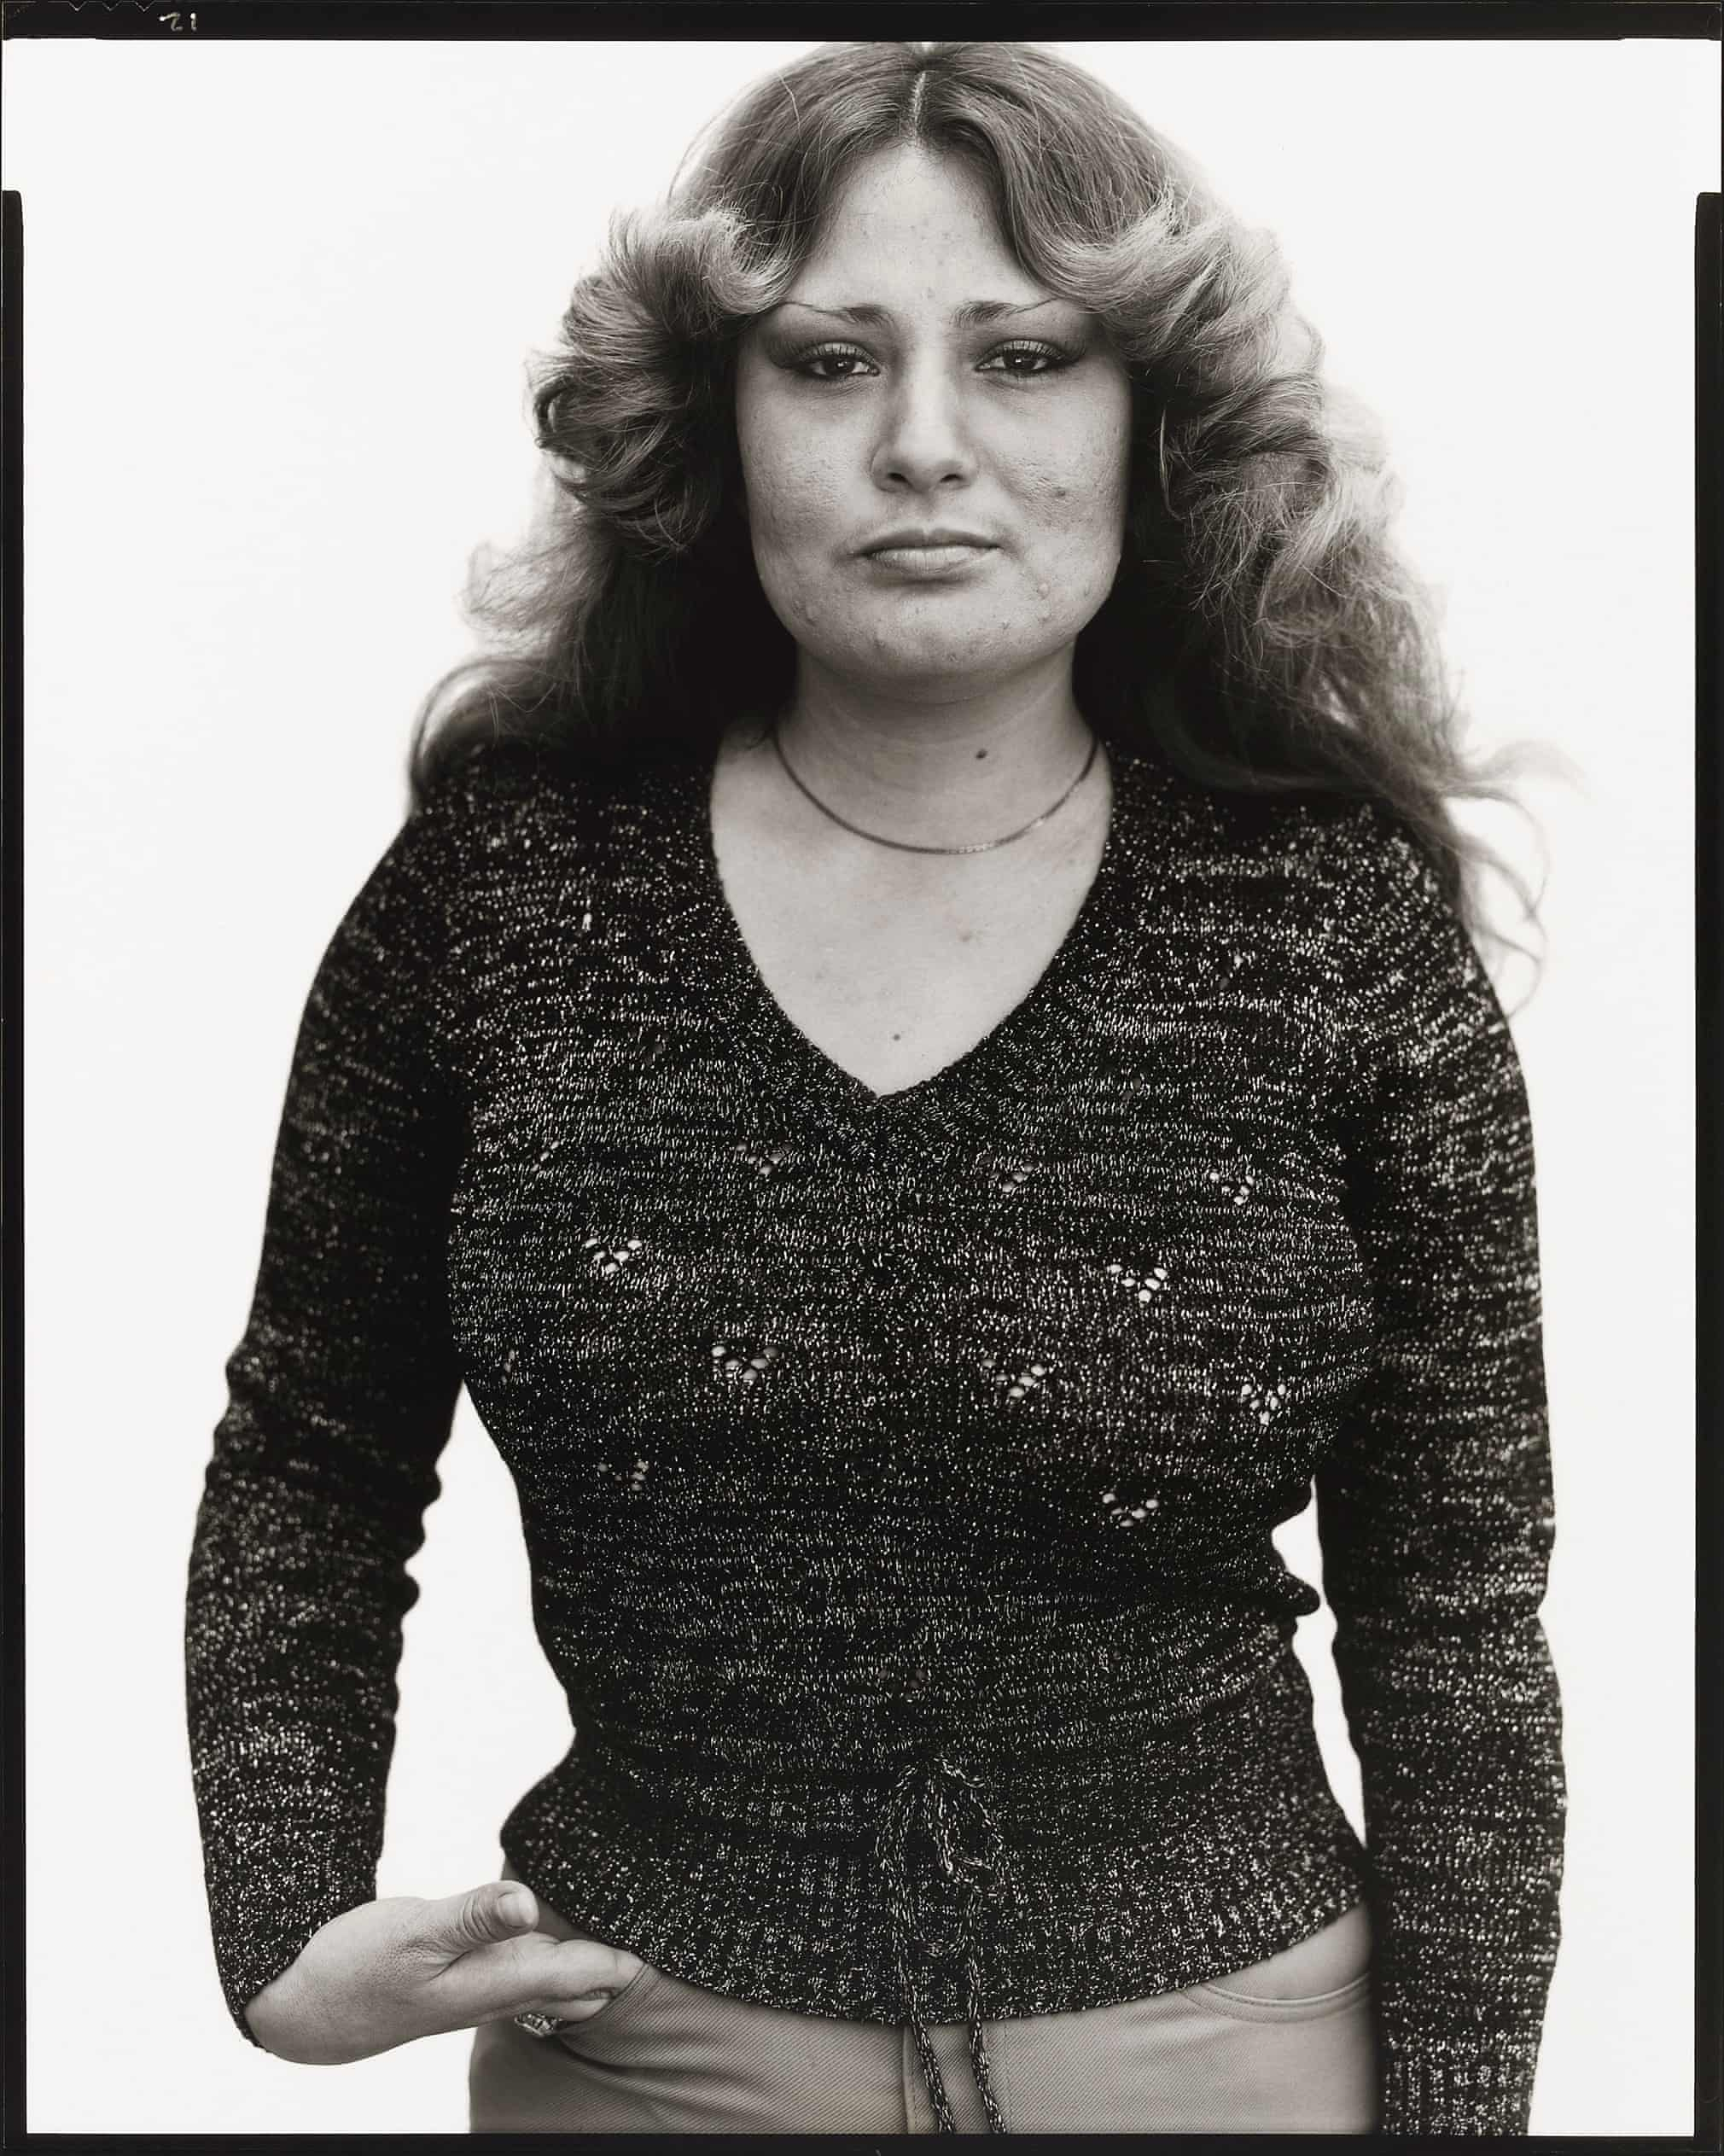 Rita Carl,  Law Enforcement Student , Sweetwater, Texas, March 10, 1979